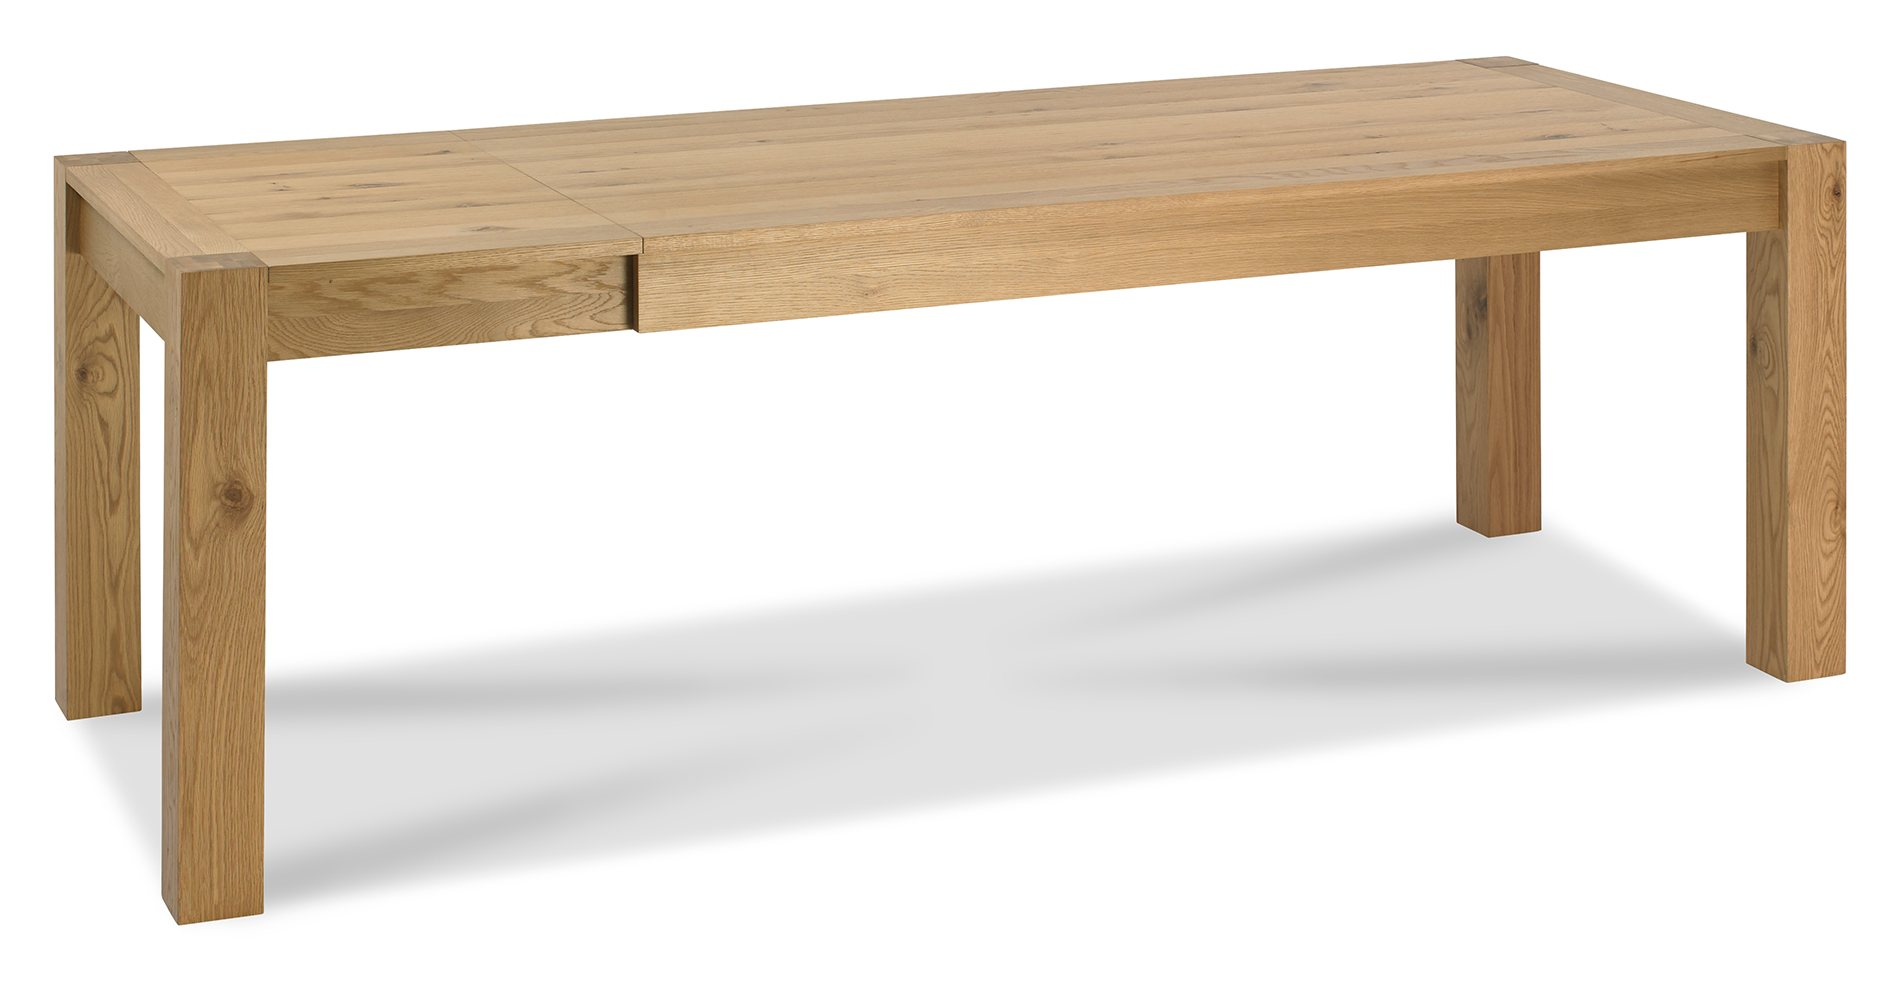 LILLE OAK LARGE EXTENDING TABLE OPENED - L245cm x D90cm x H75cm